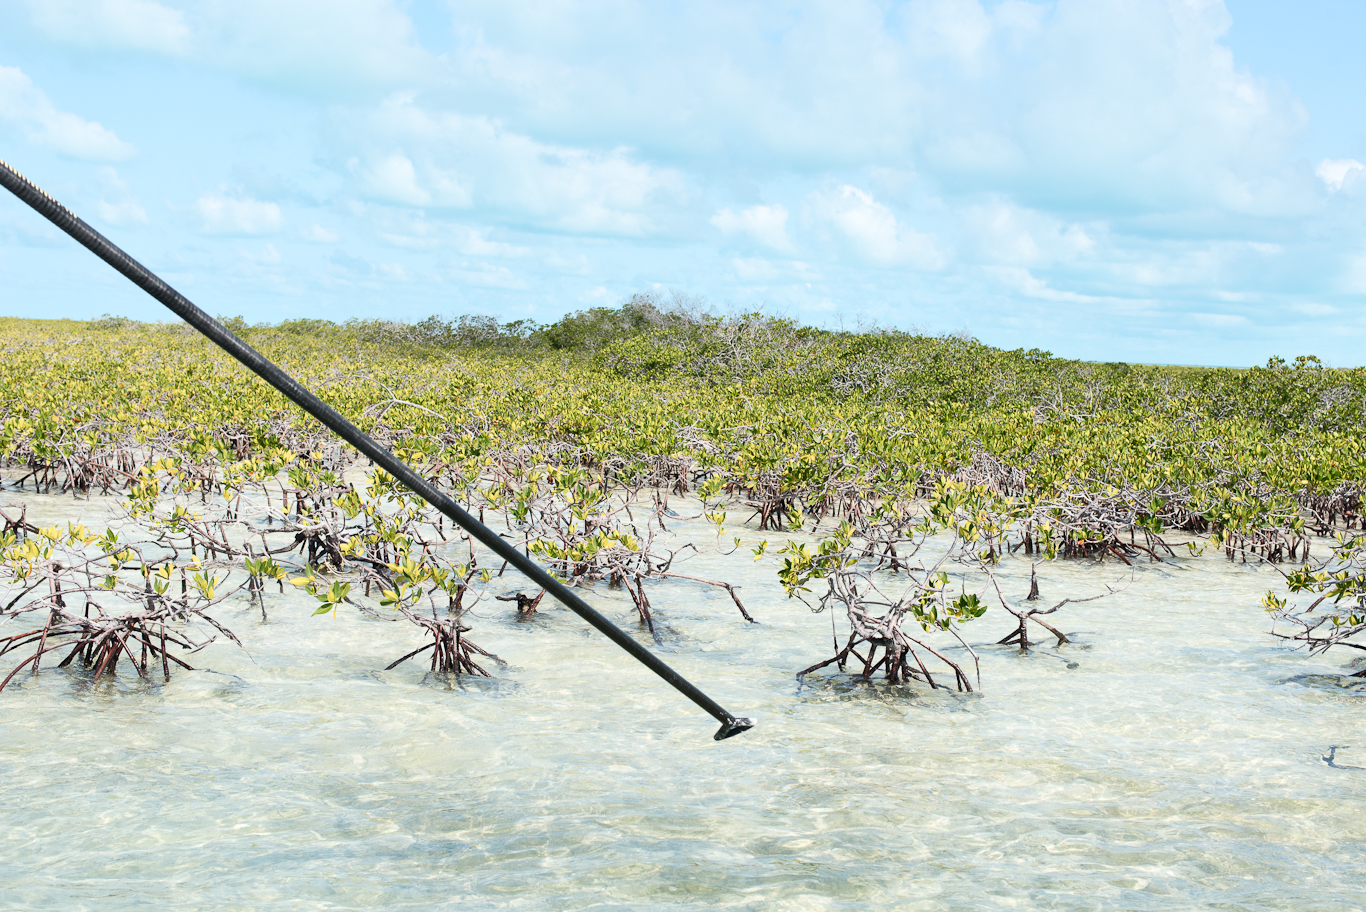 Bahamas, Flyfishing, Push Pole, South Andros,